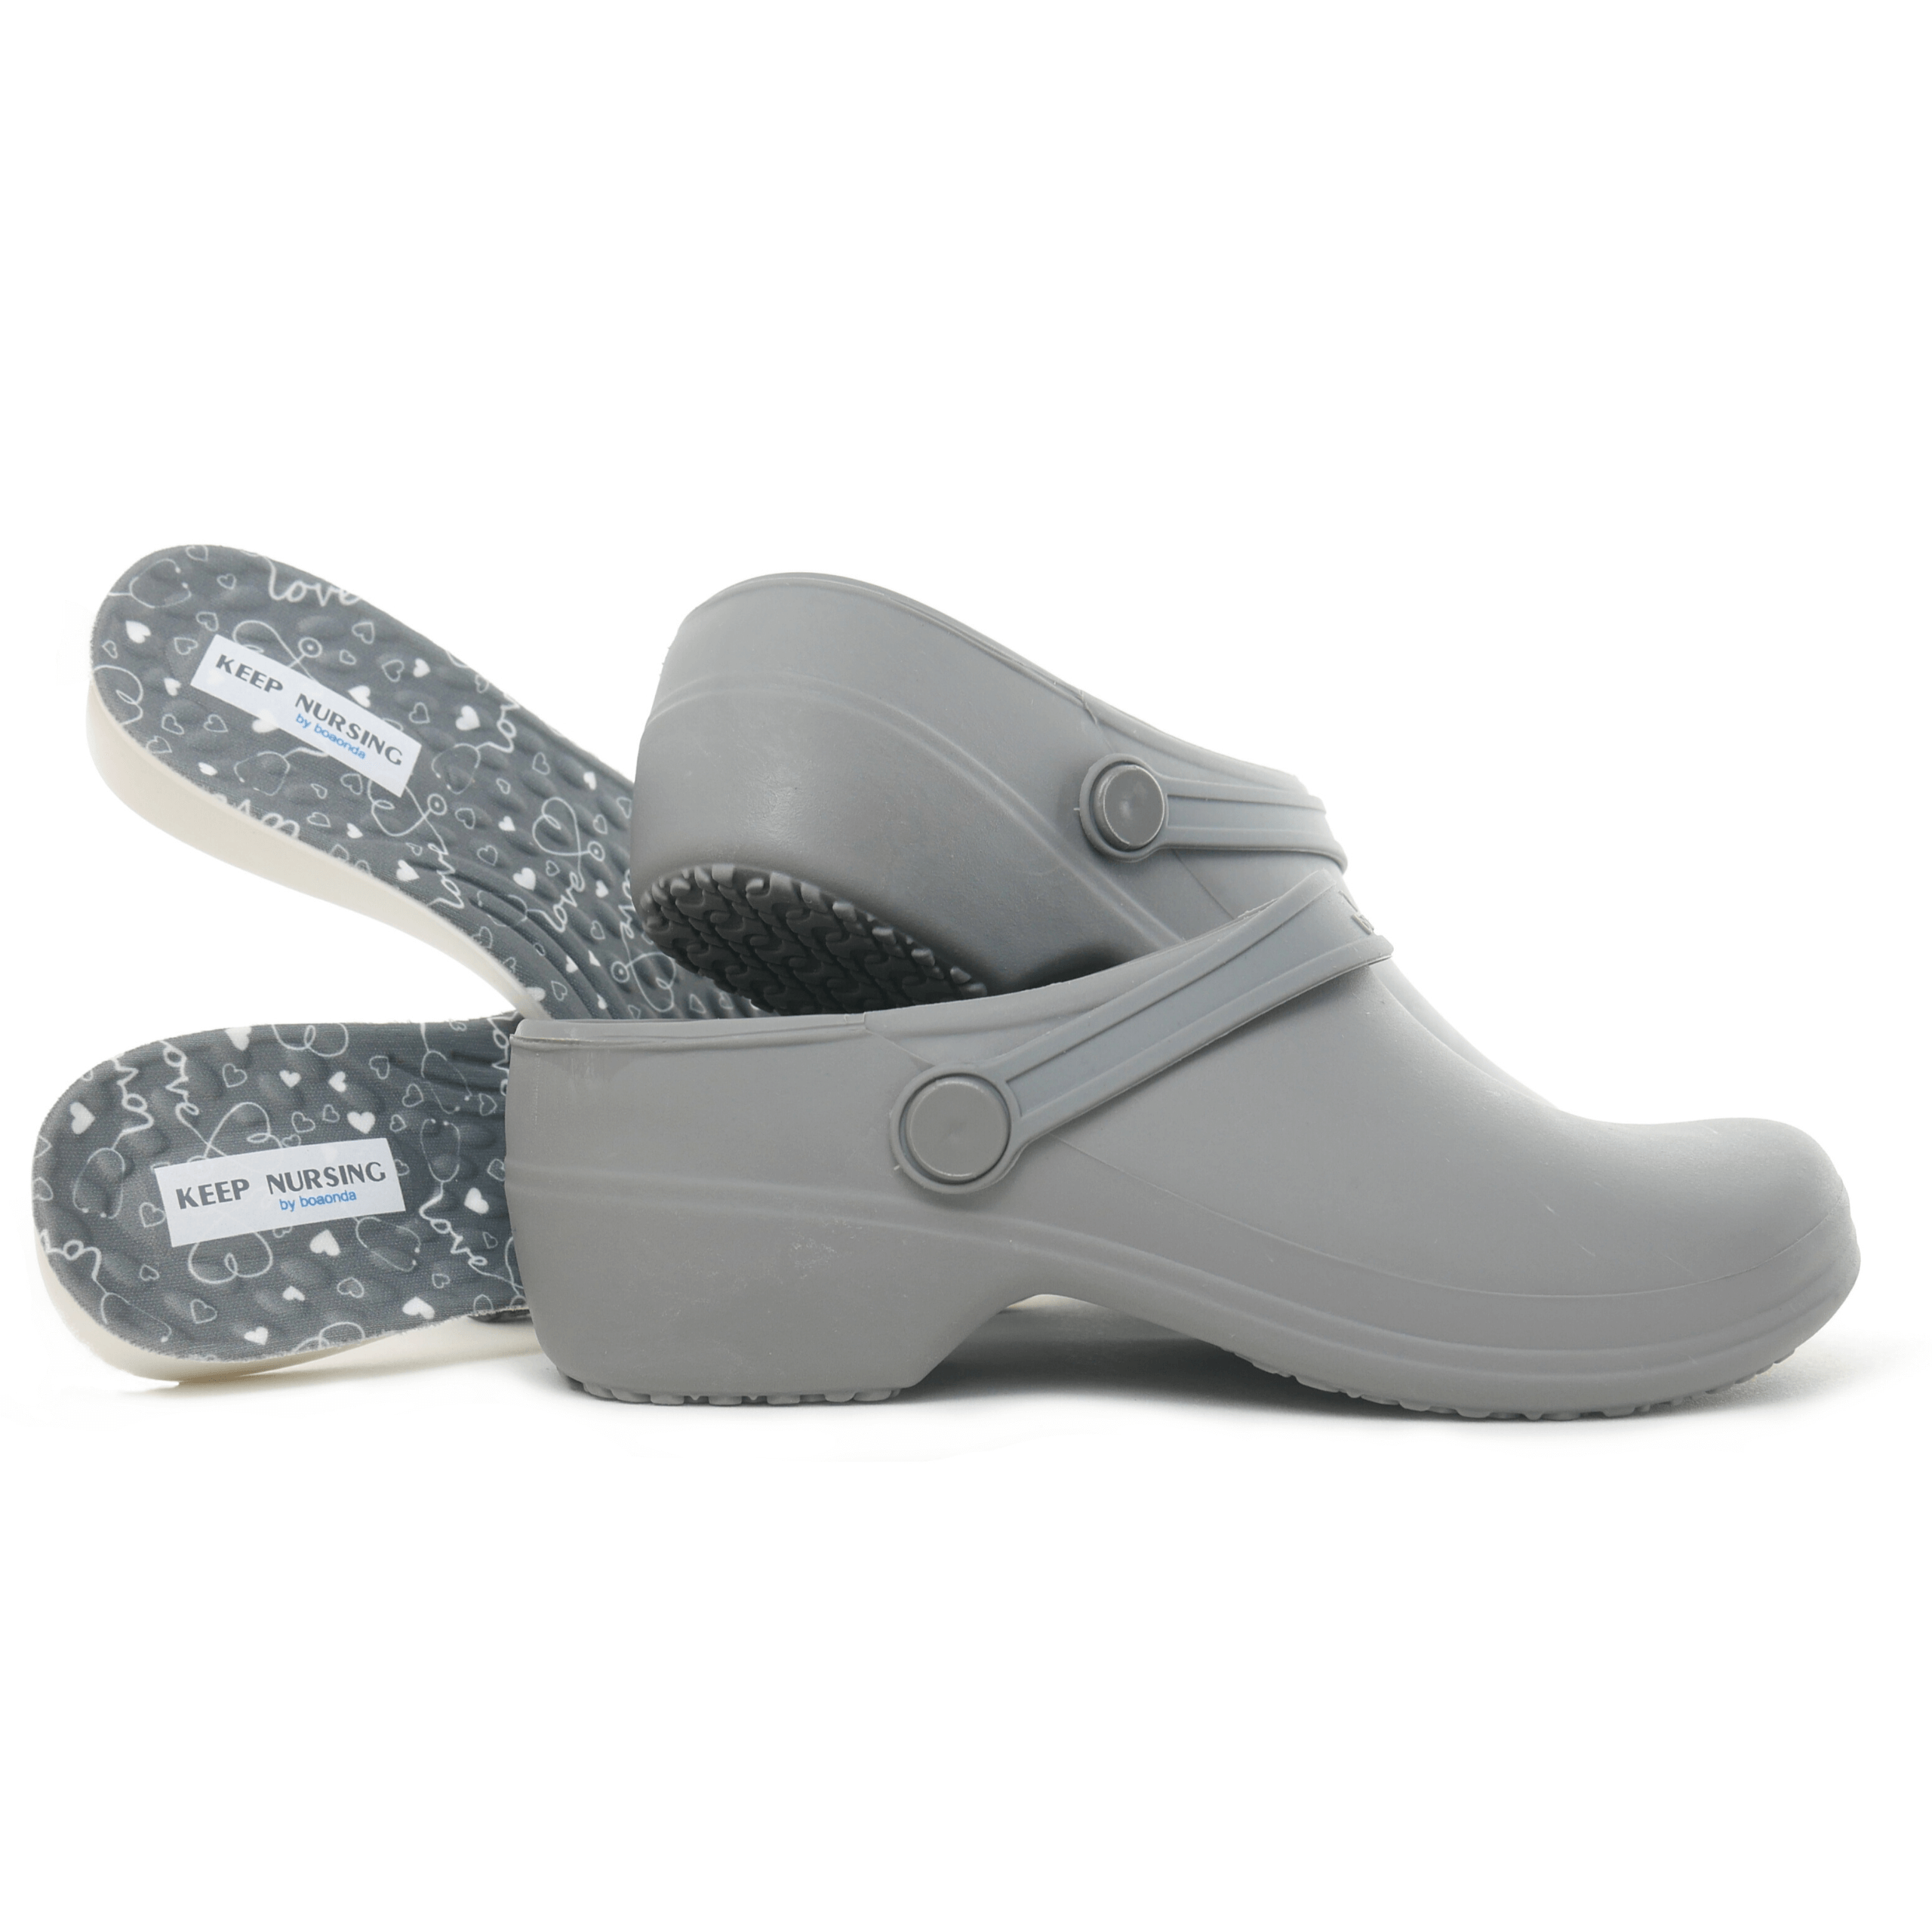 Bio Nurse Clogs - Gray with printed insole - Stetho Love